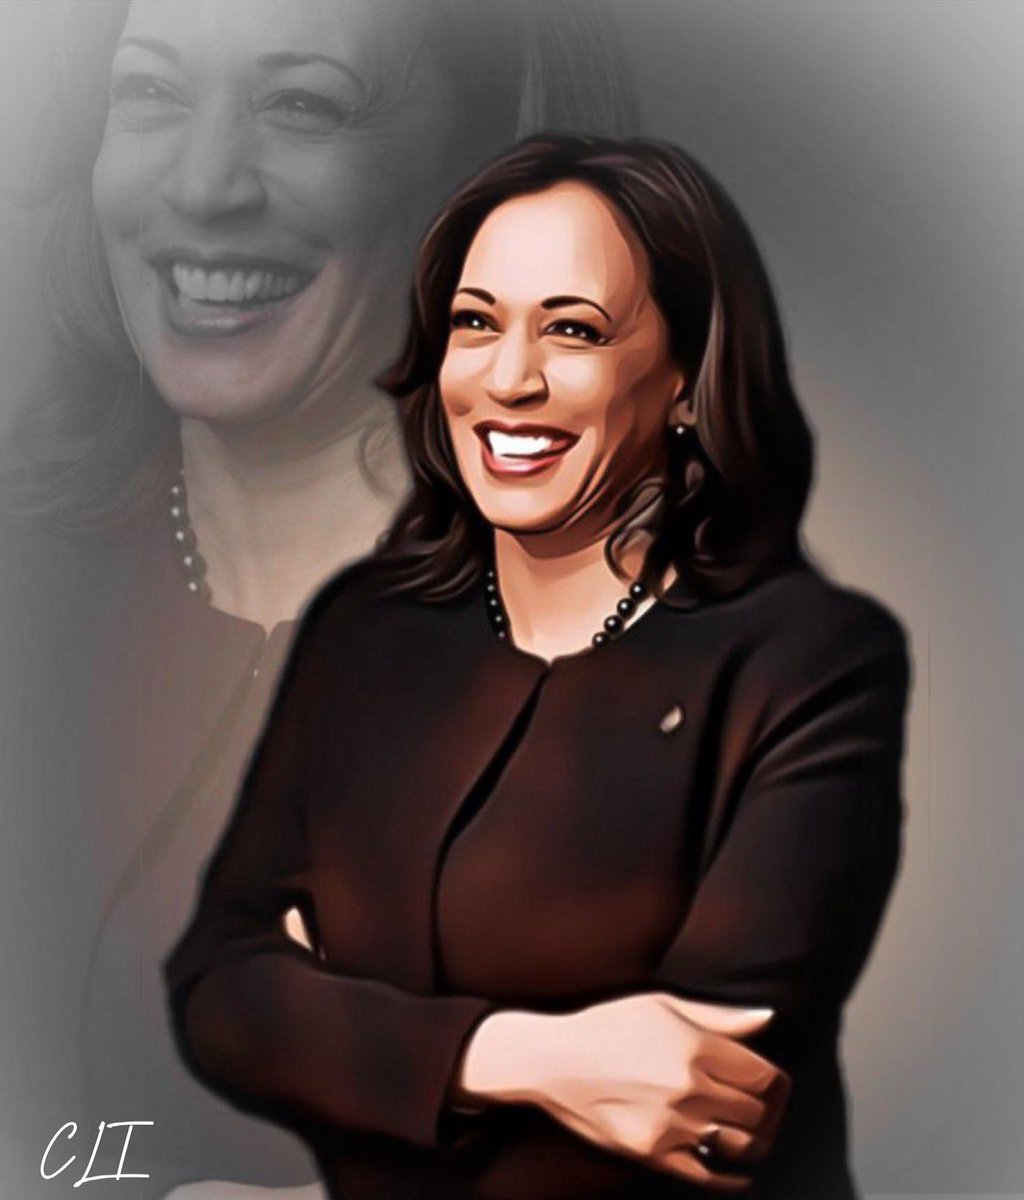 Let's start Women's History Month off right. Vice-President @KamalaHarris is the first woman to ascend to the nation's 2nd highest office in 243 years! #Salute #WomensHistoryMonth #womenrock